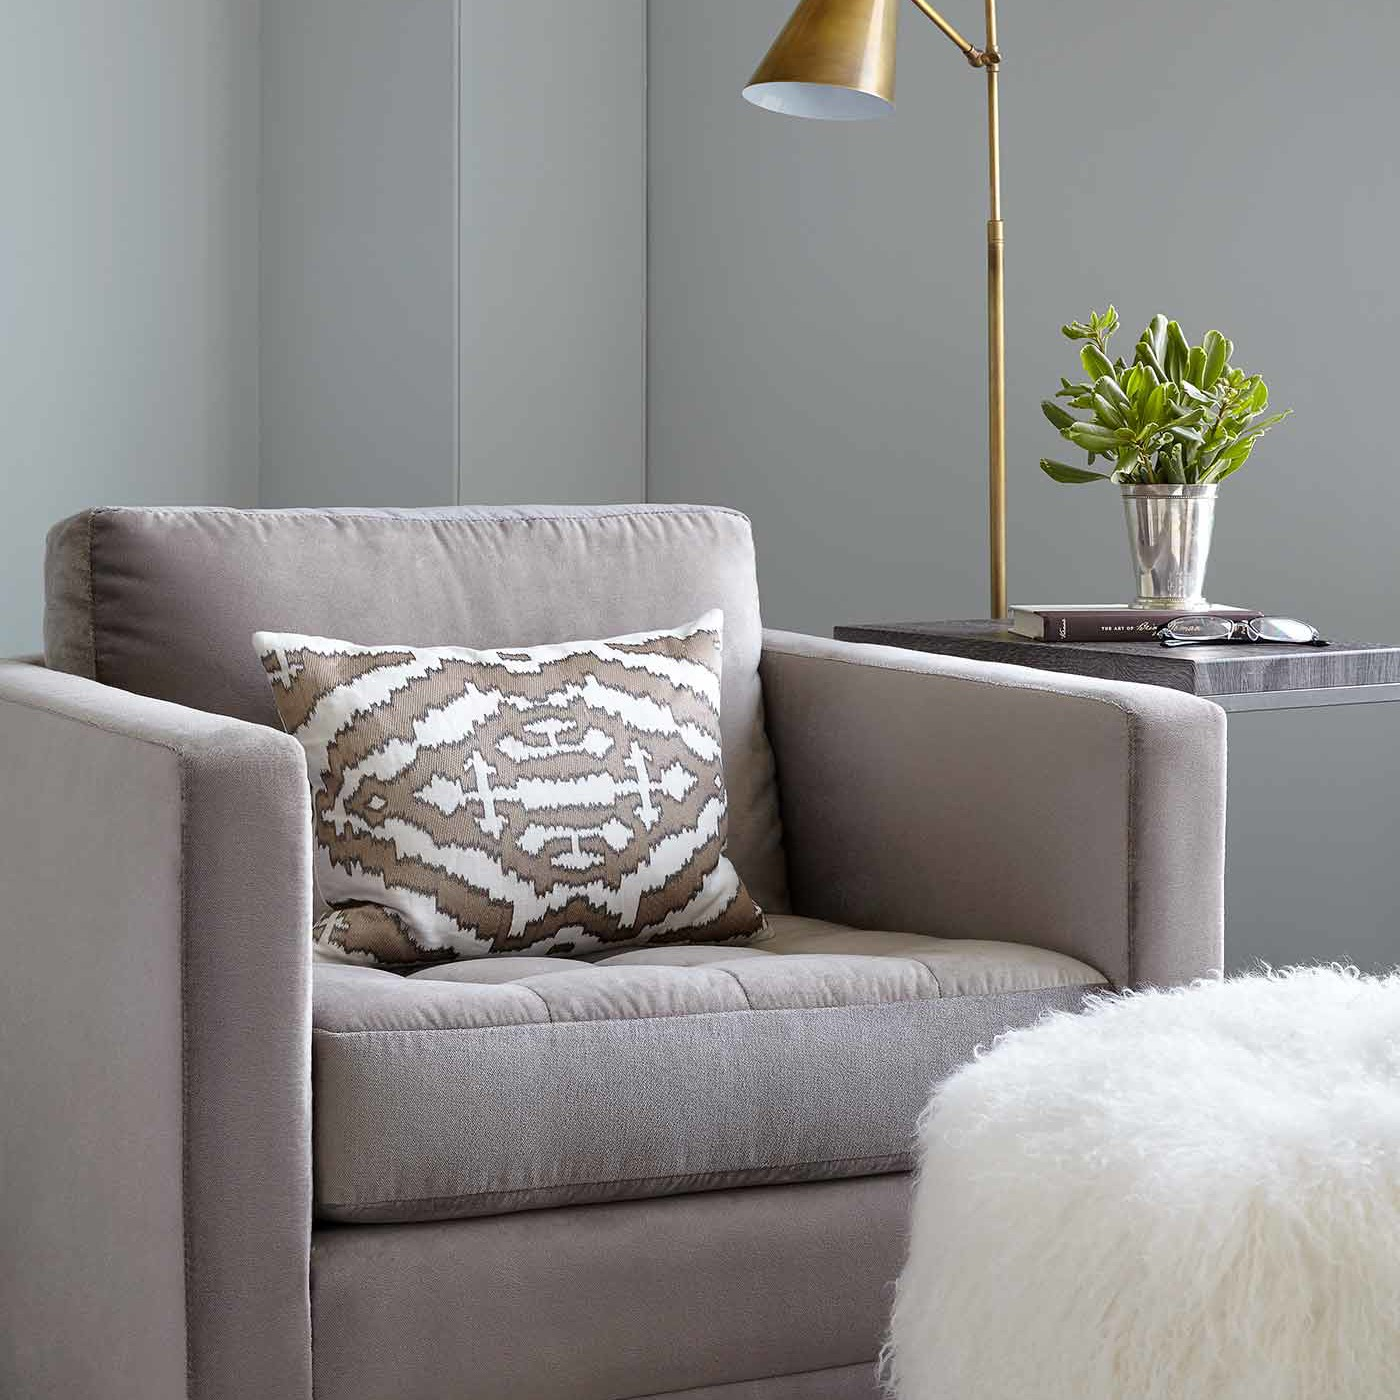 Arm chair in a NYC apartment interior design project by Darci Hether New York